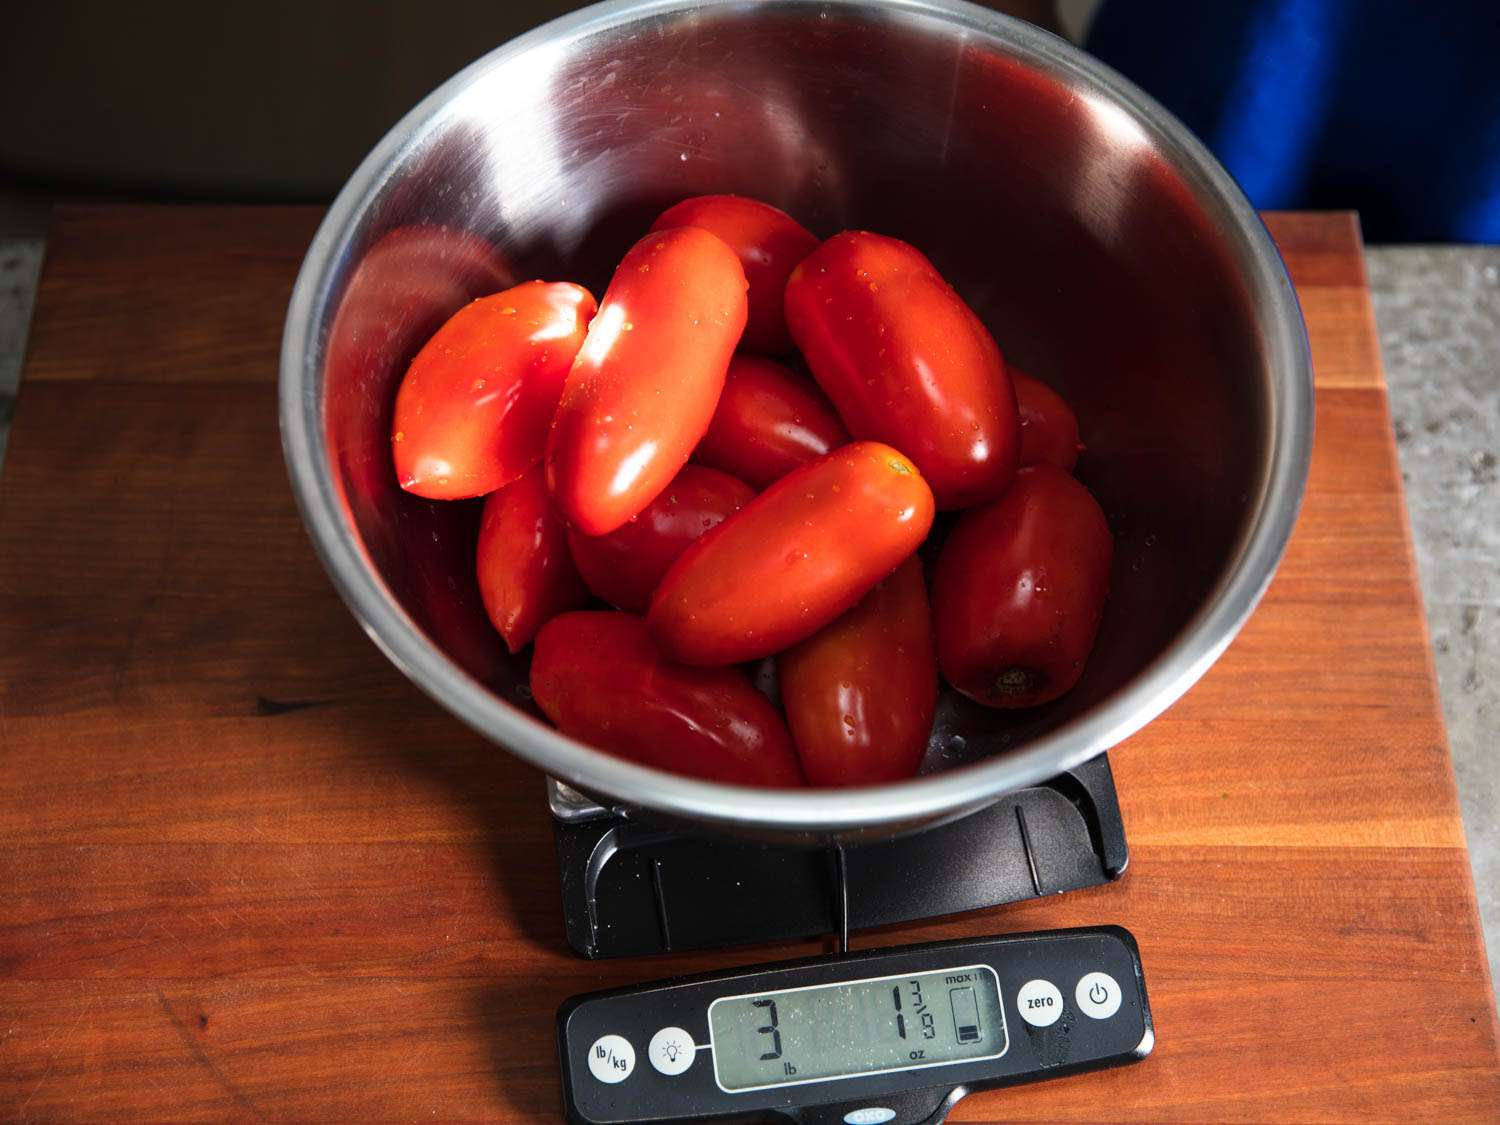 Washed plum tomatoes being weighed in a metal bowl on a digital scale